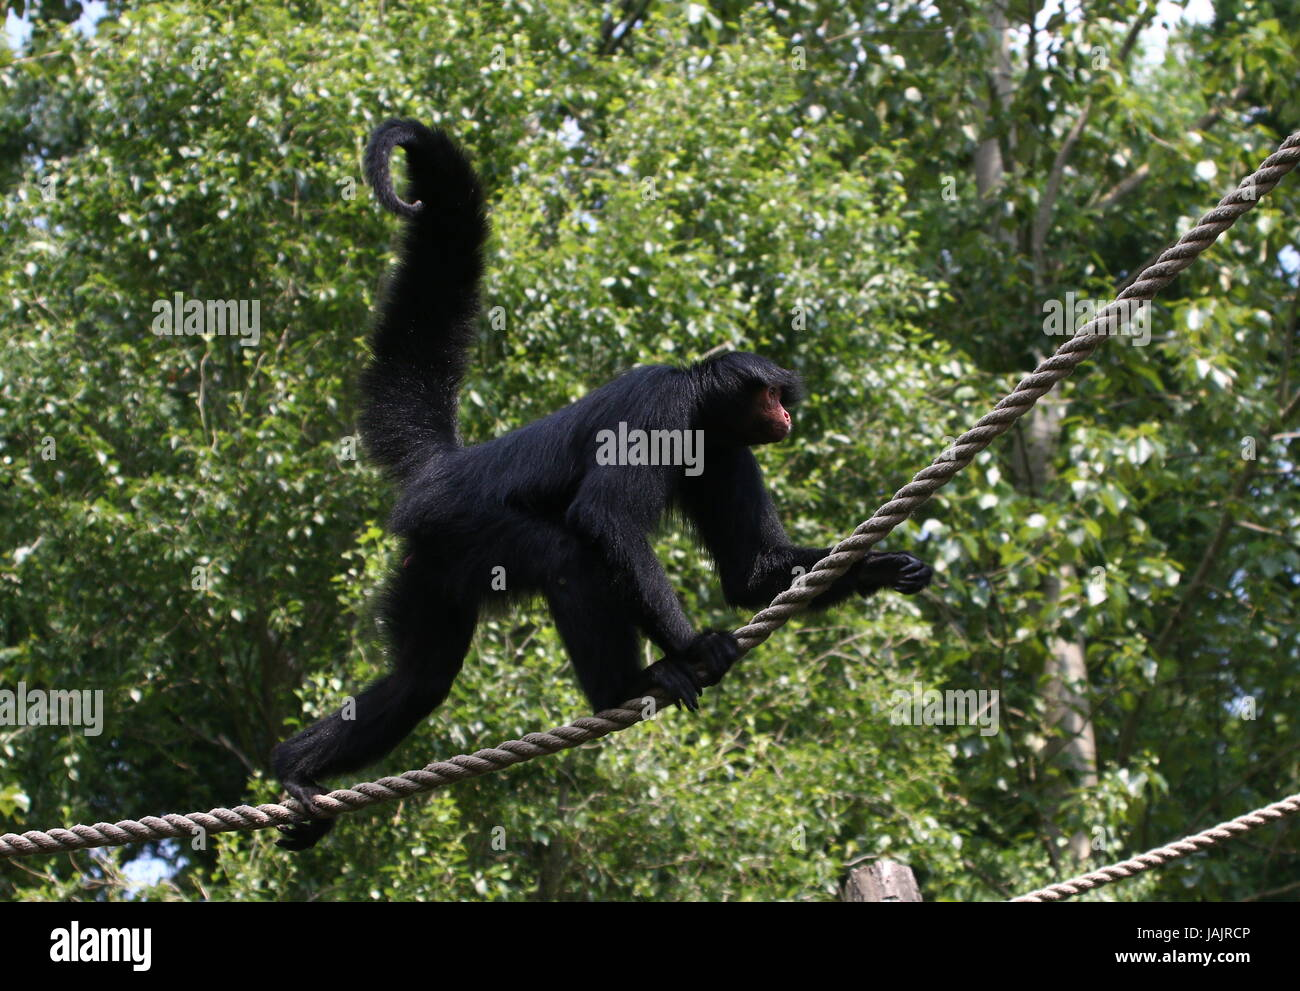 Tightrope walking South American Red-Faced Black Spider Monkey (Ateles paniscus) a.k.a. Guiana spider monkey. - Stock Image